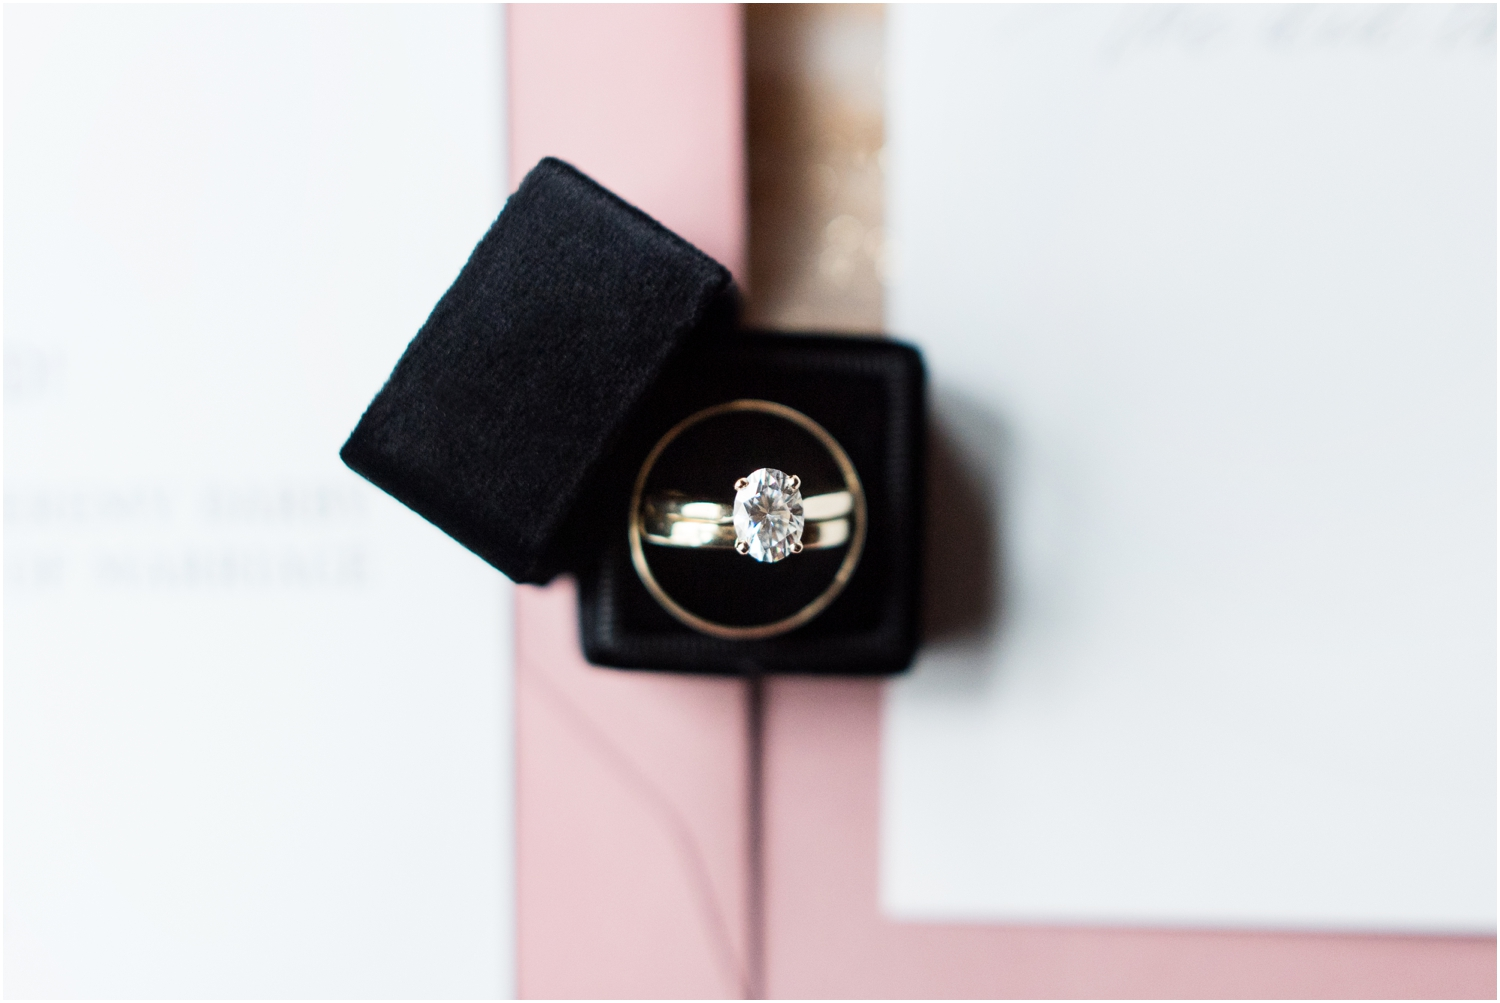 Coldwater Gardens woodsy wedding milton florida photographer details rings